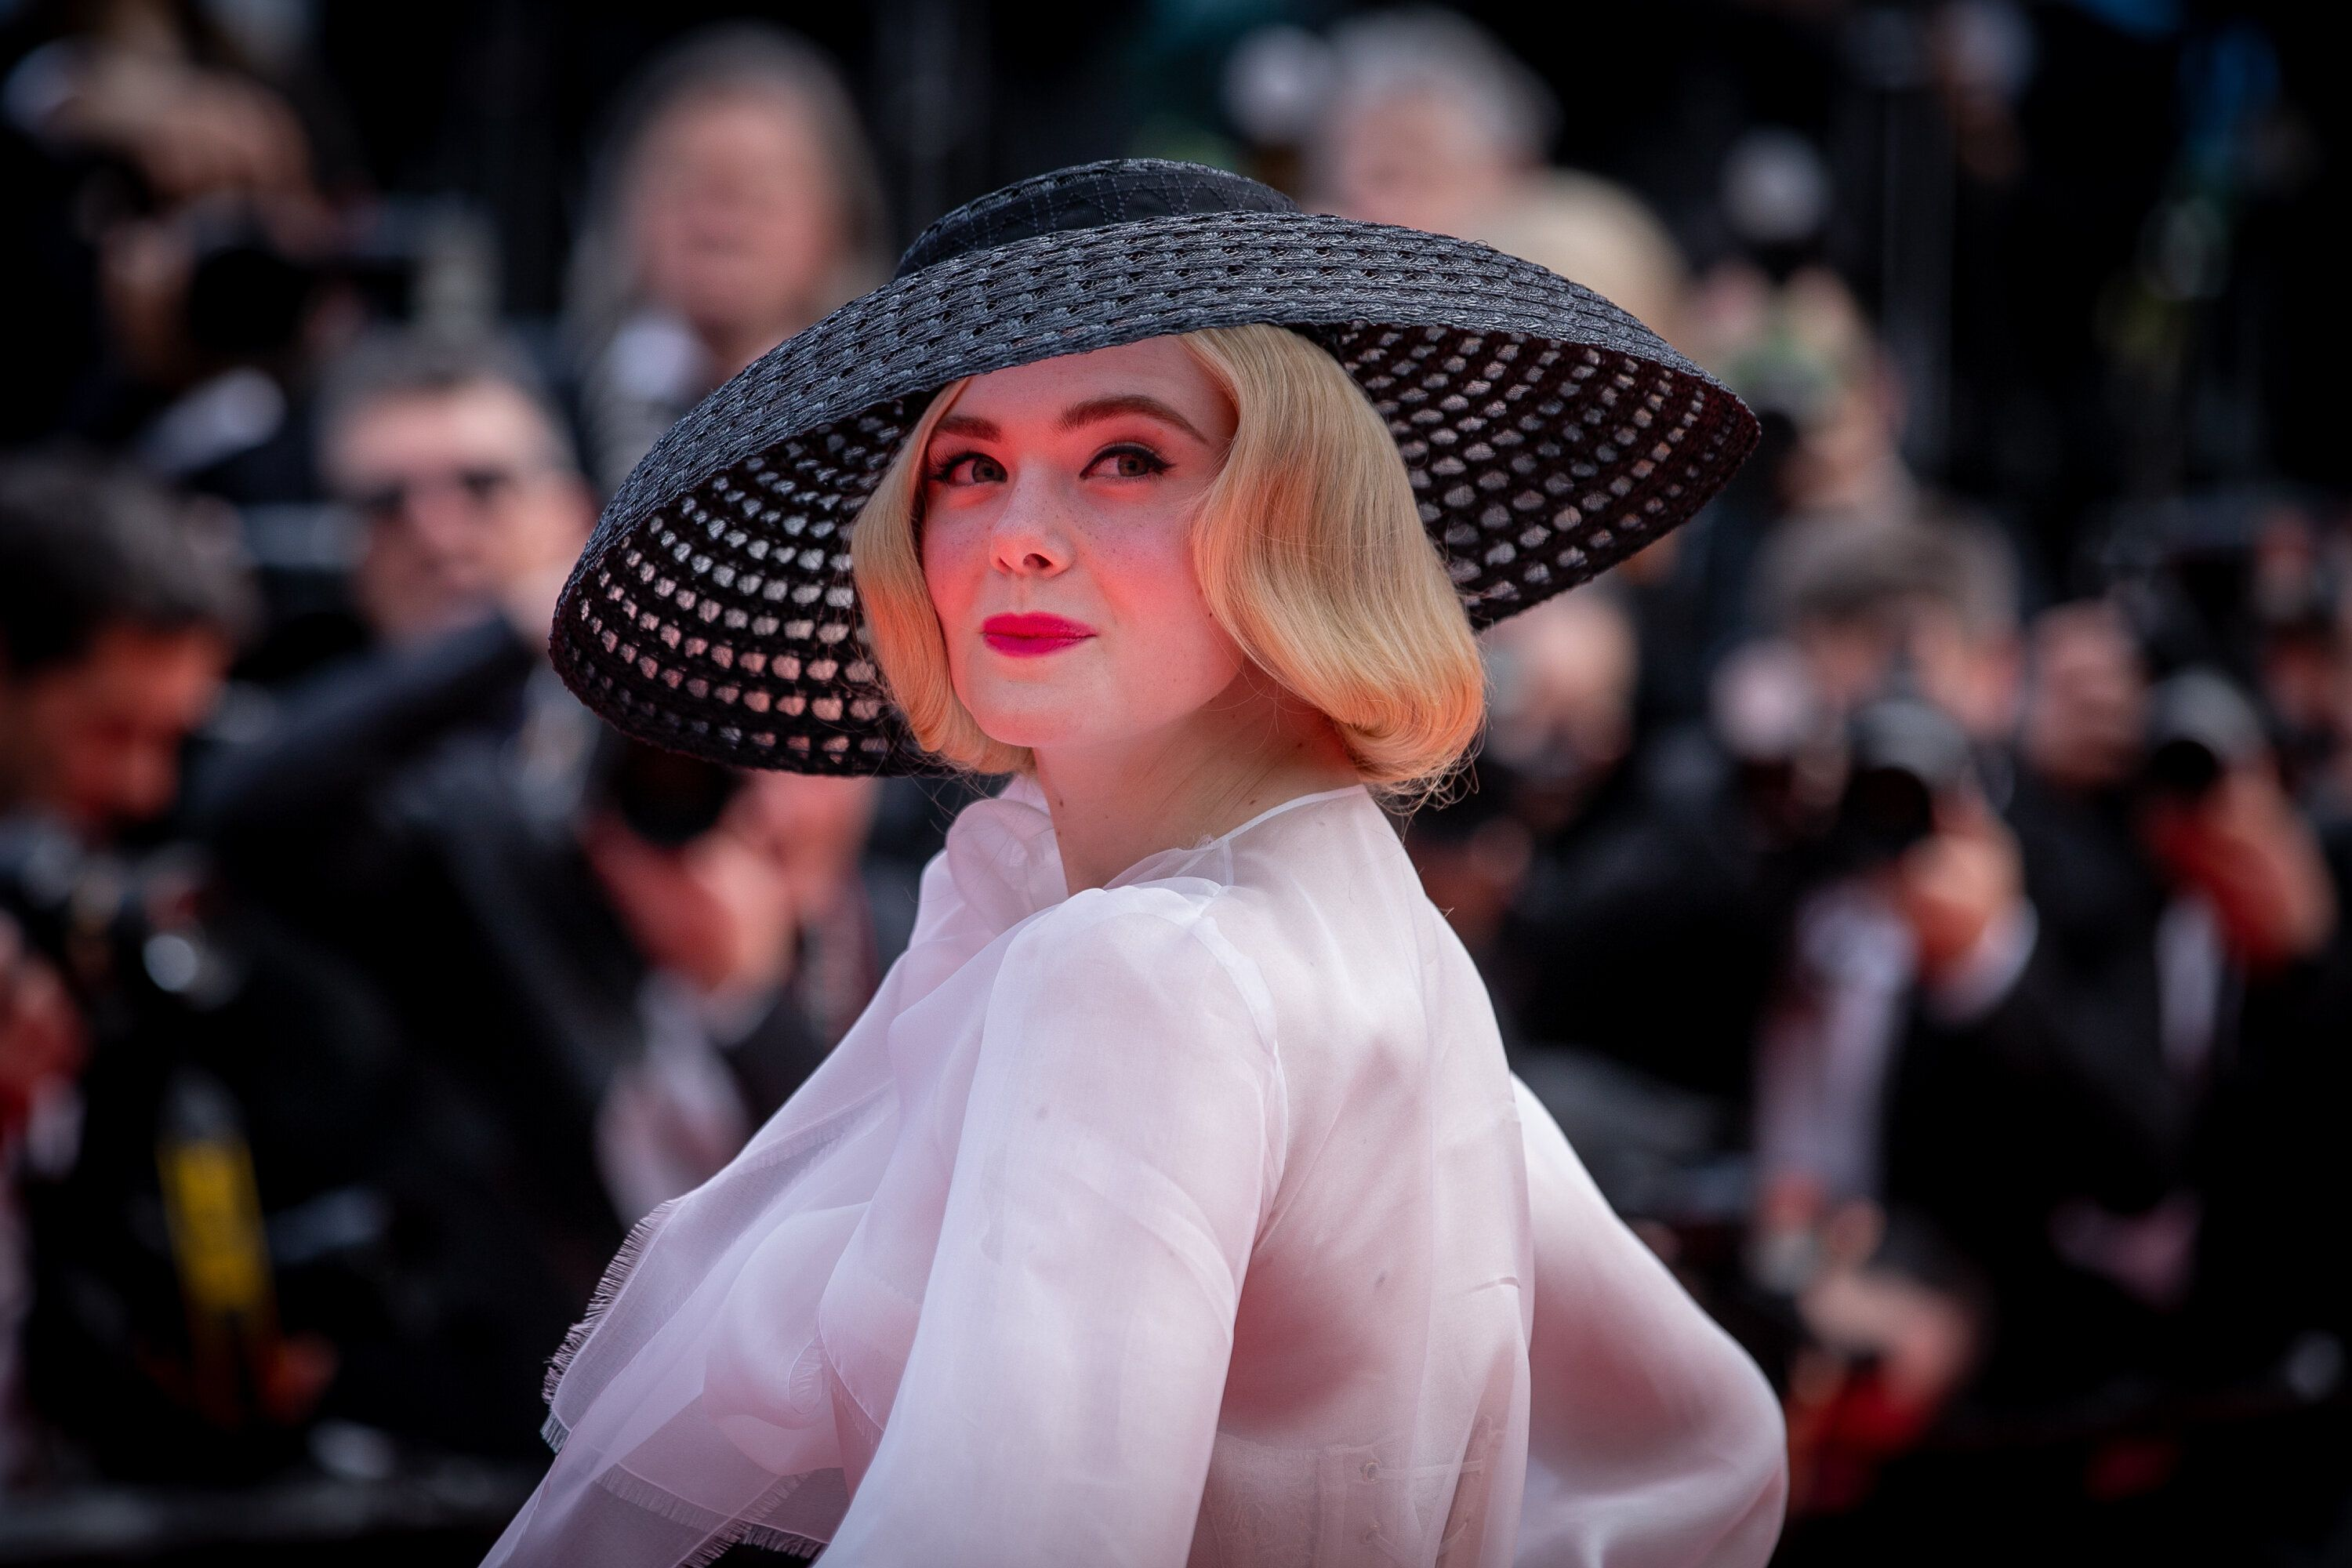 """CANNES, FRANCE - MAY 21: Actress Elle Fanning attends the screening of """"Once Upon A Time In Hollywood"""" during the 72nd annual Cannes Film Festival on May 21, 2019 in Cannes, France. (Photo by Marc Piasecki/FilmMagic)"""